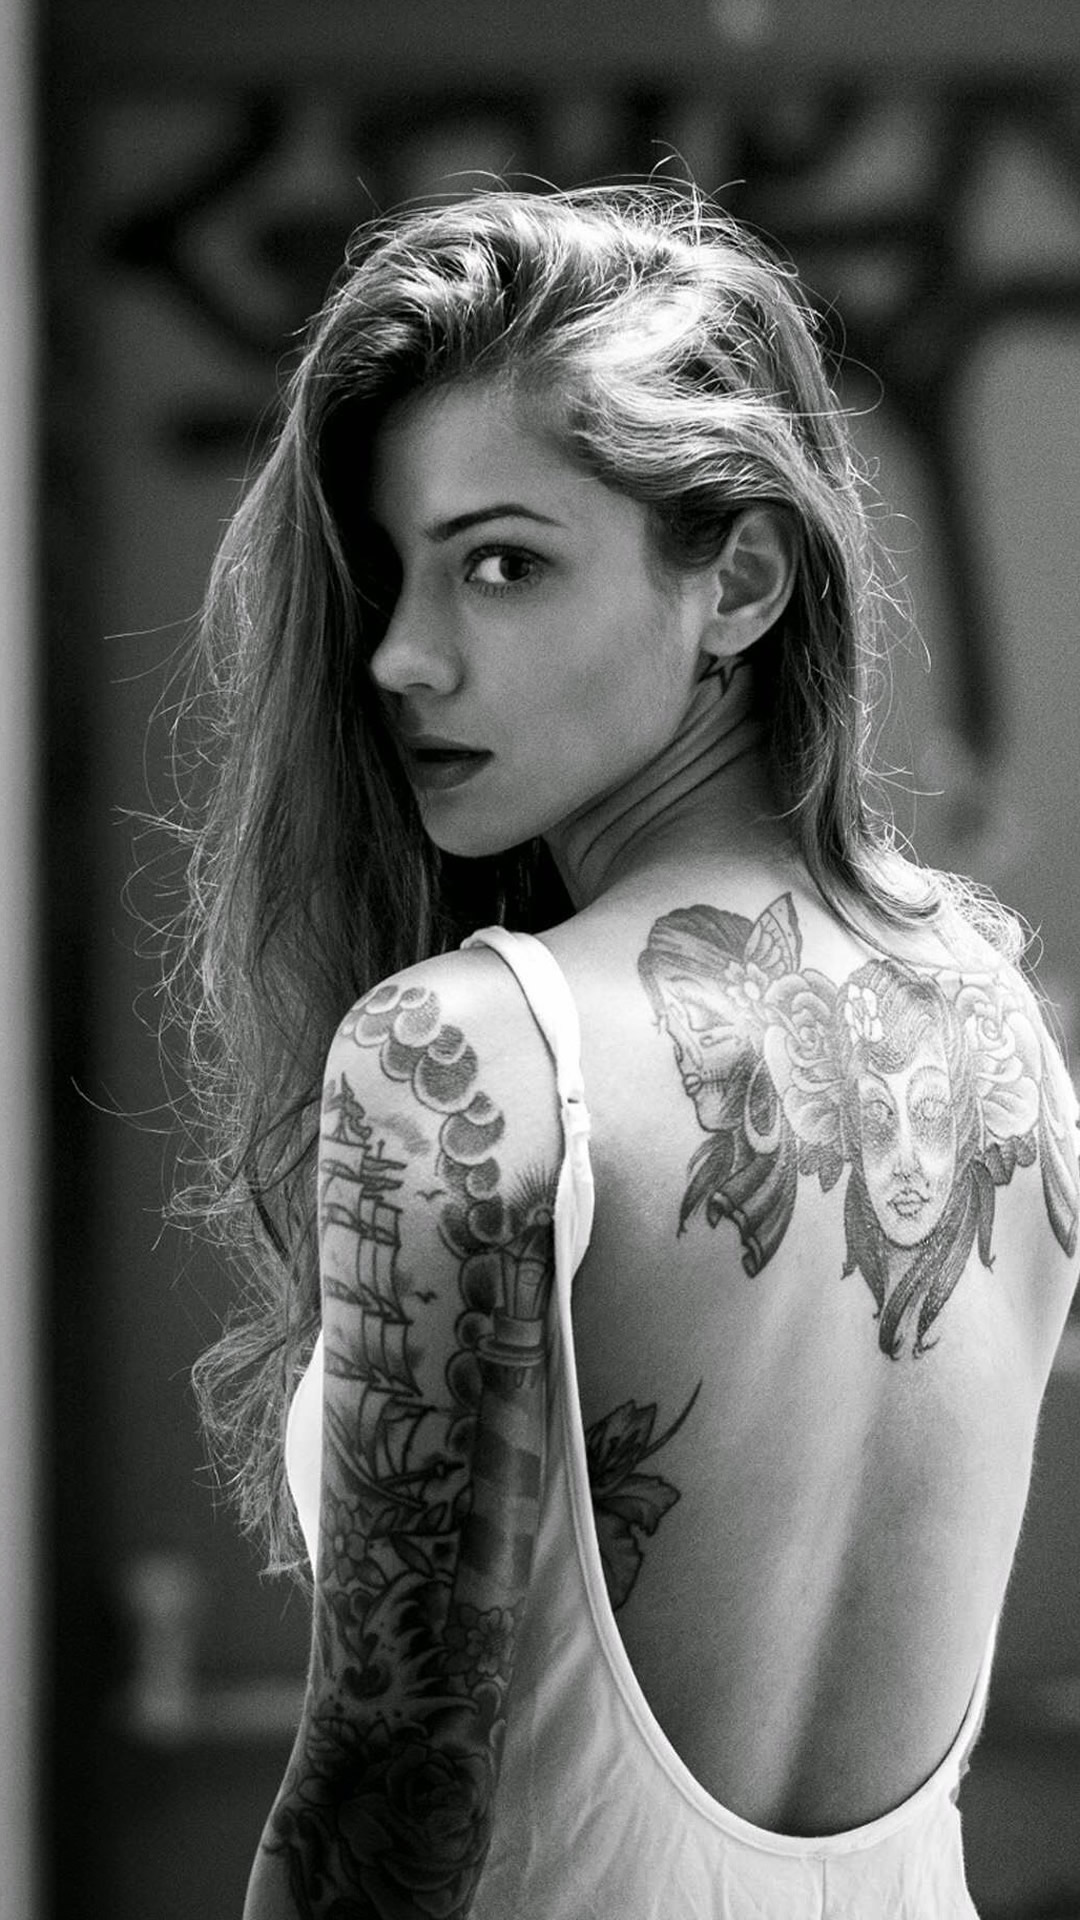 Tattoo girl iphone wallpaper wallpapersafari for Woman with tattoos